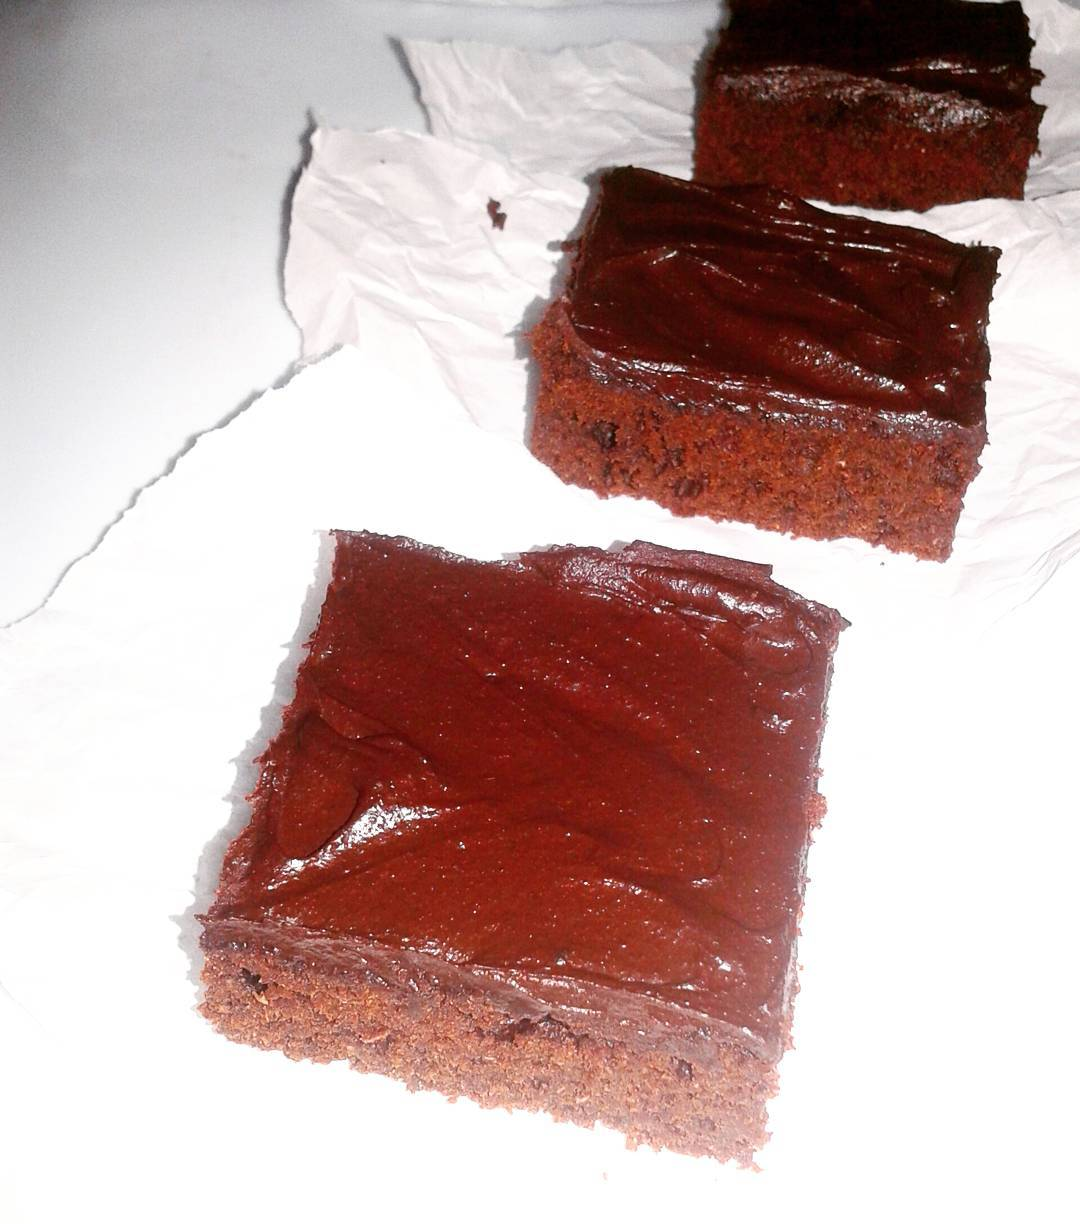 healthy & fudgy dark chocolate frosted brownies by @myfoodandvisits